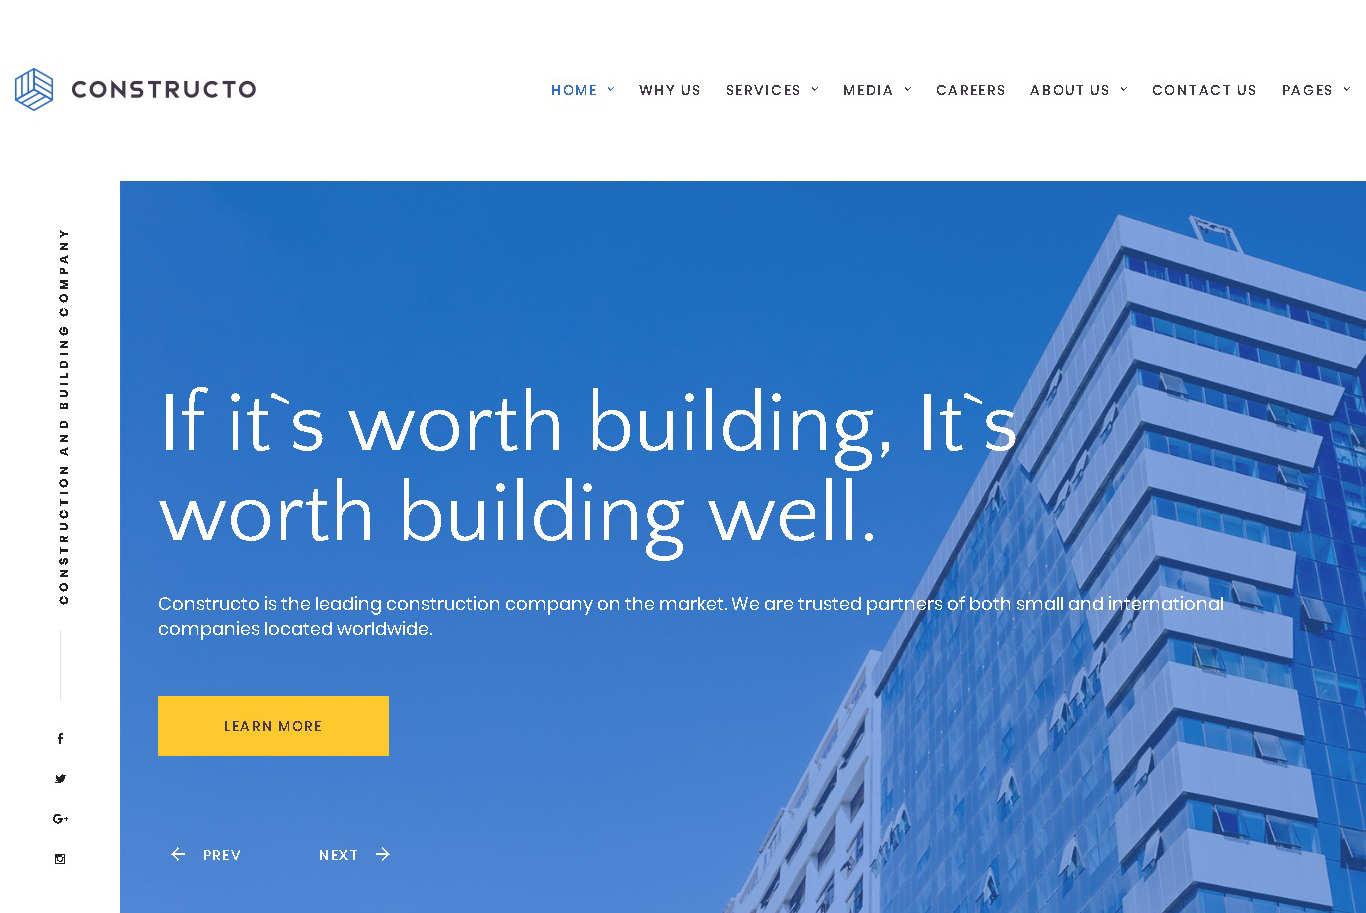 constructo architecture & construction_company_responsive website template